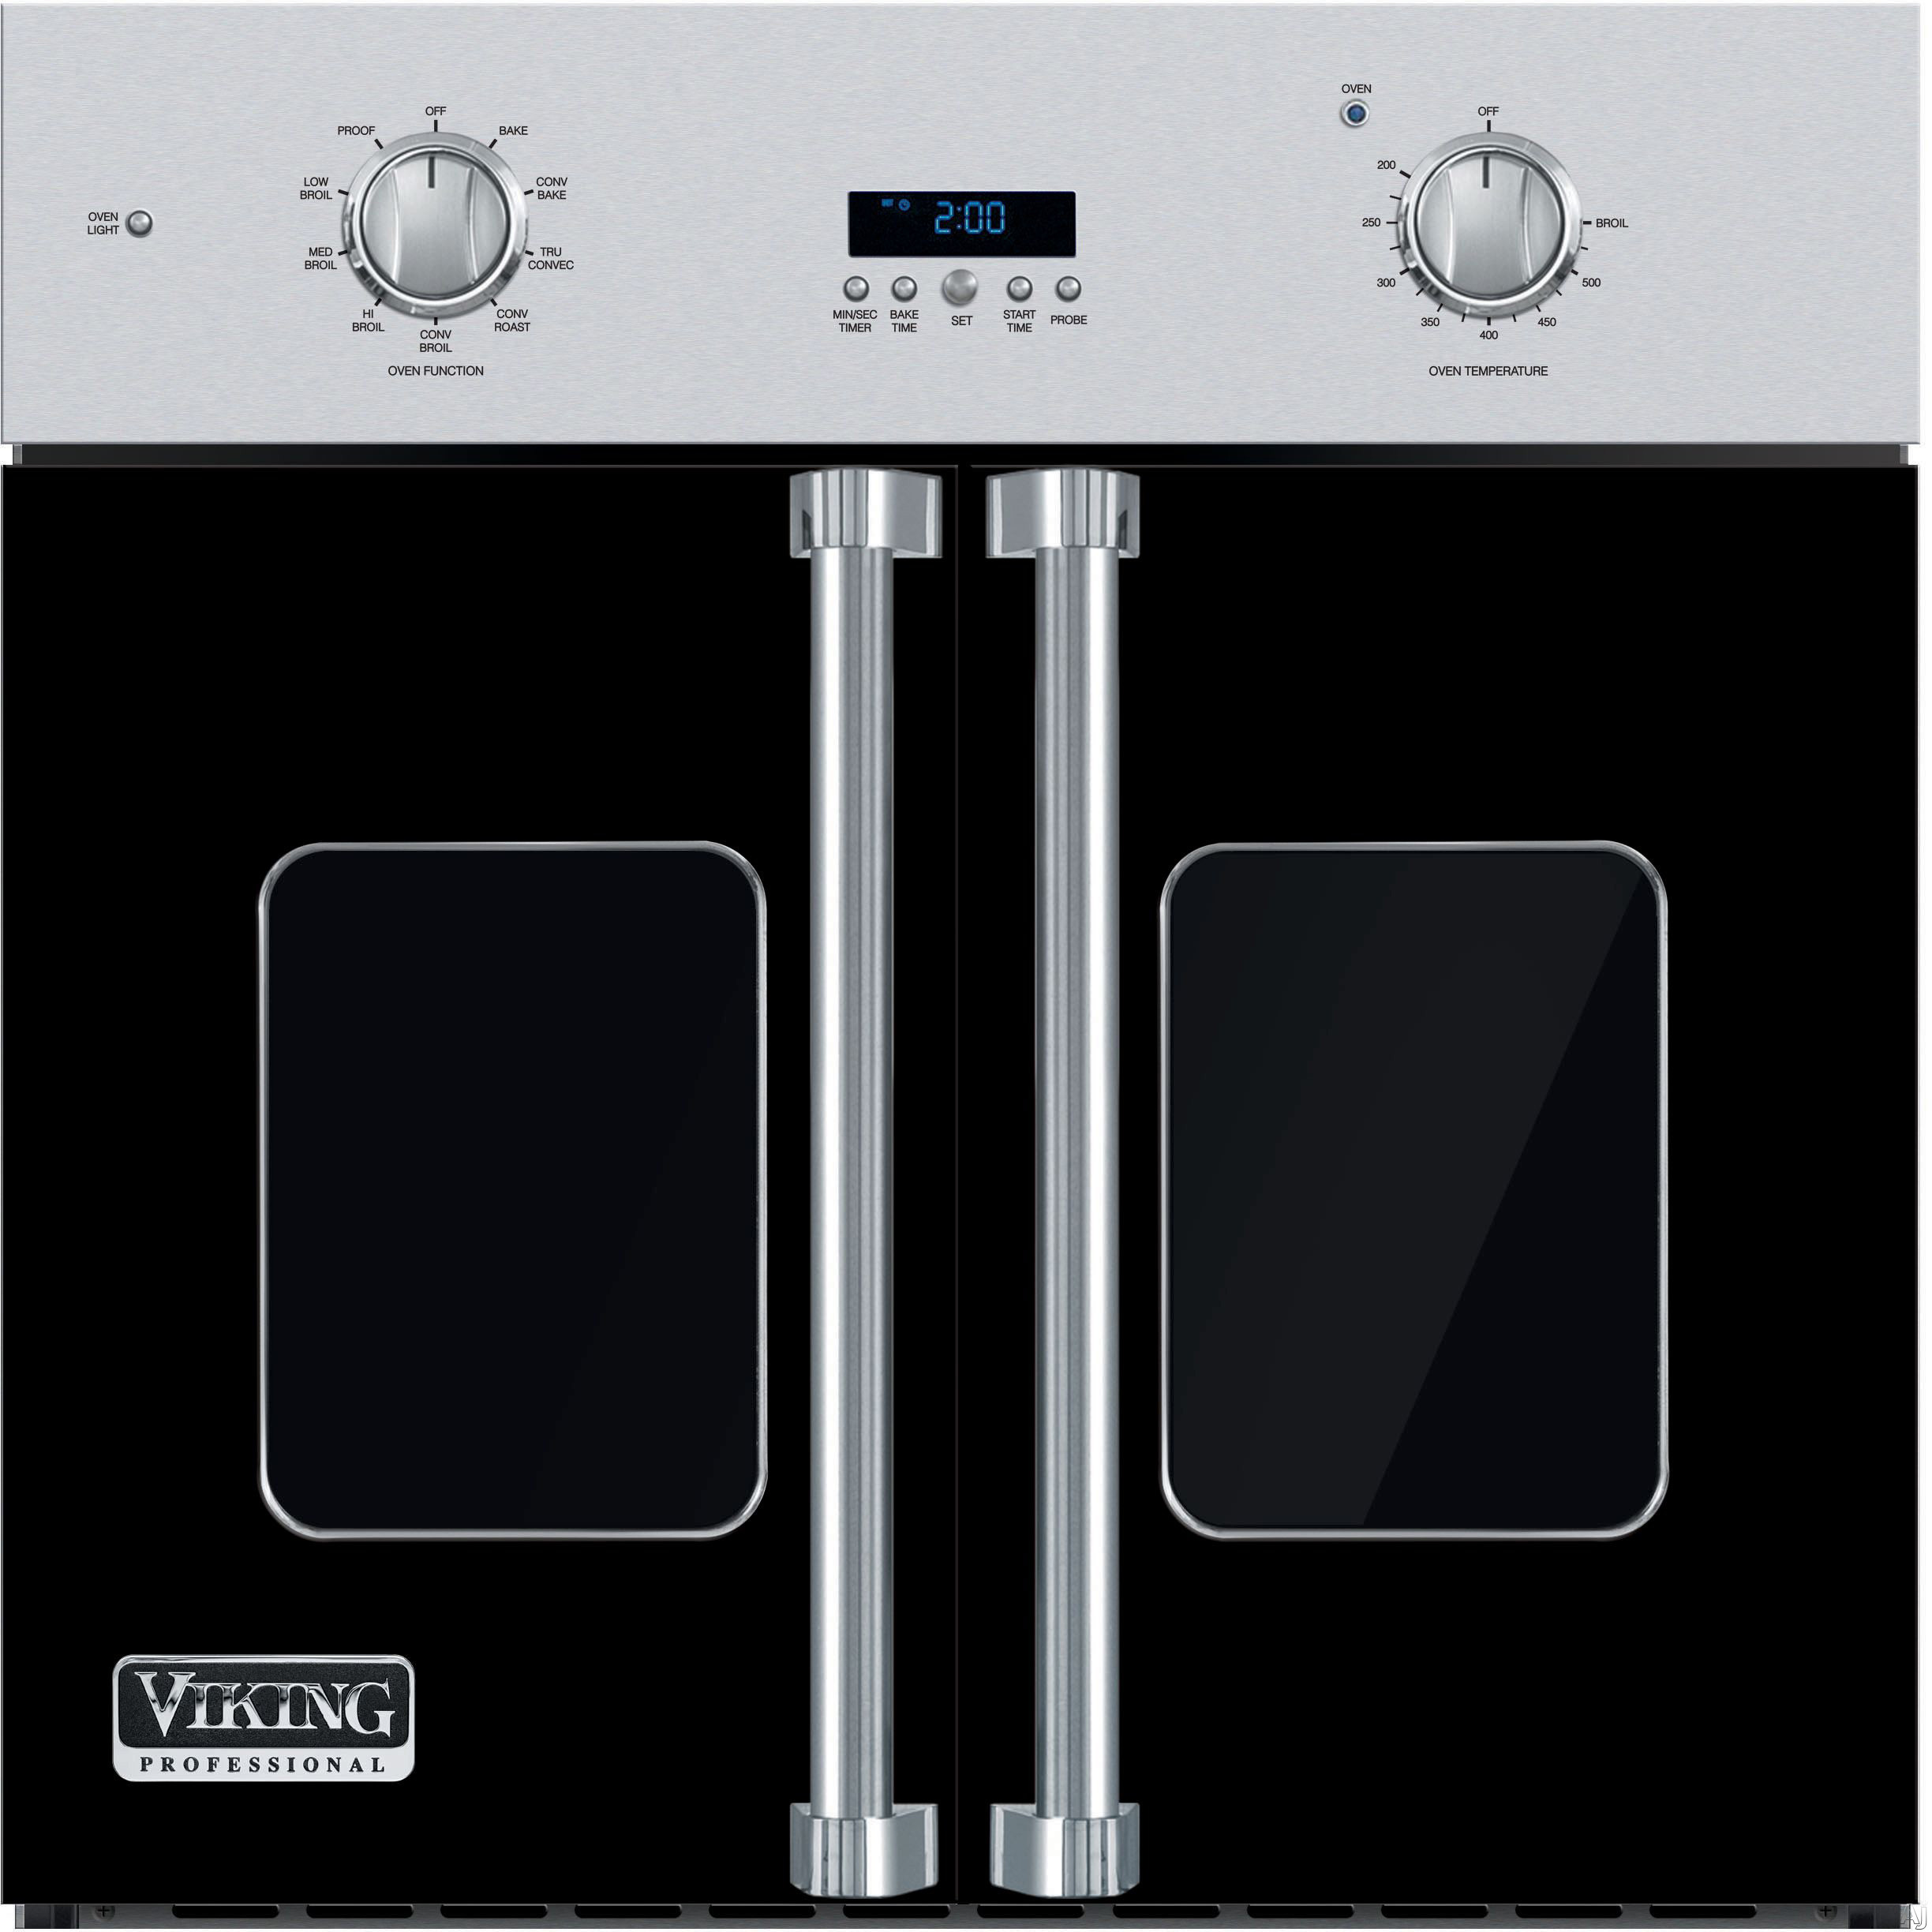 Viking Professional 7 Series VSOF730BK 30 Inch Single French Door Wall Oven with 4.7 cu. ft. Vari-Speed Dual Flow TruConvec Cooking Capacity, Gourmet-Glo Glass Enclosed Infrared Broiler, Rapid Ready P